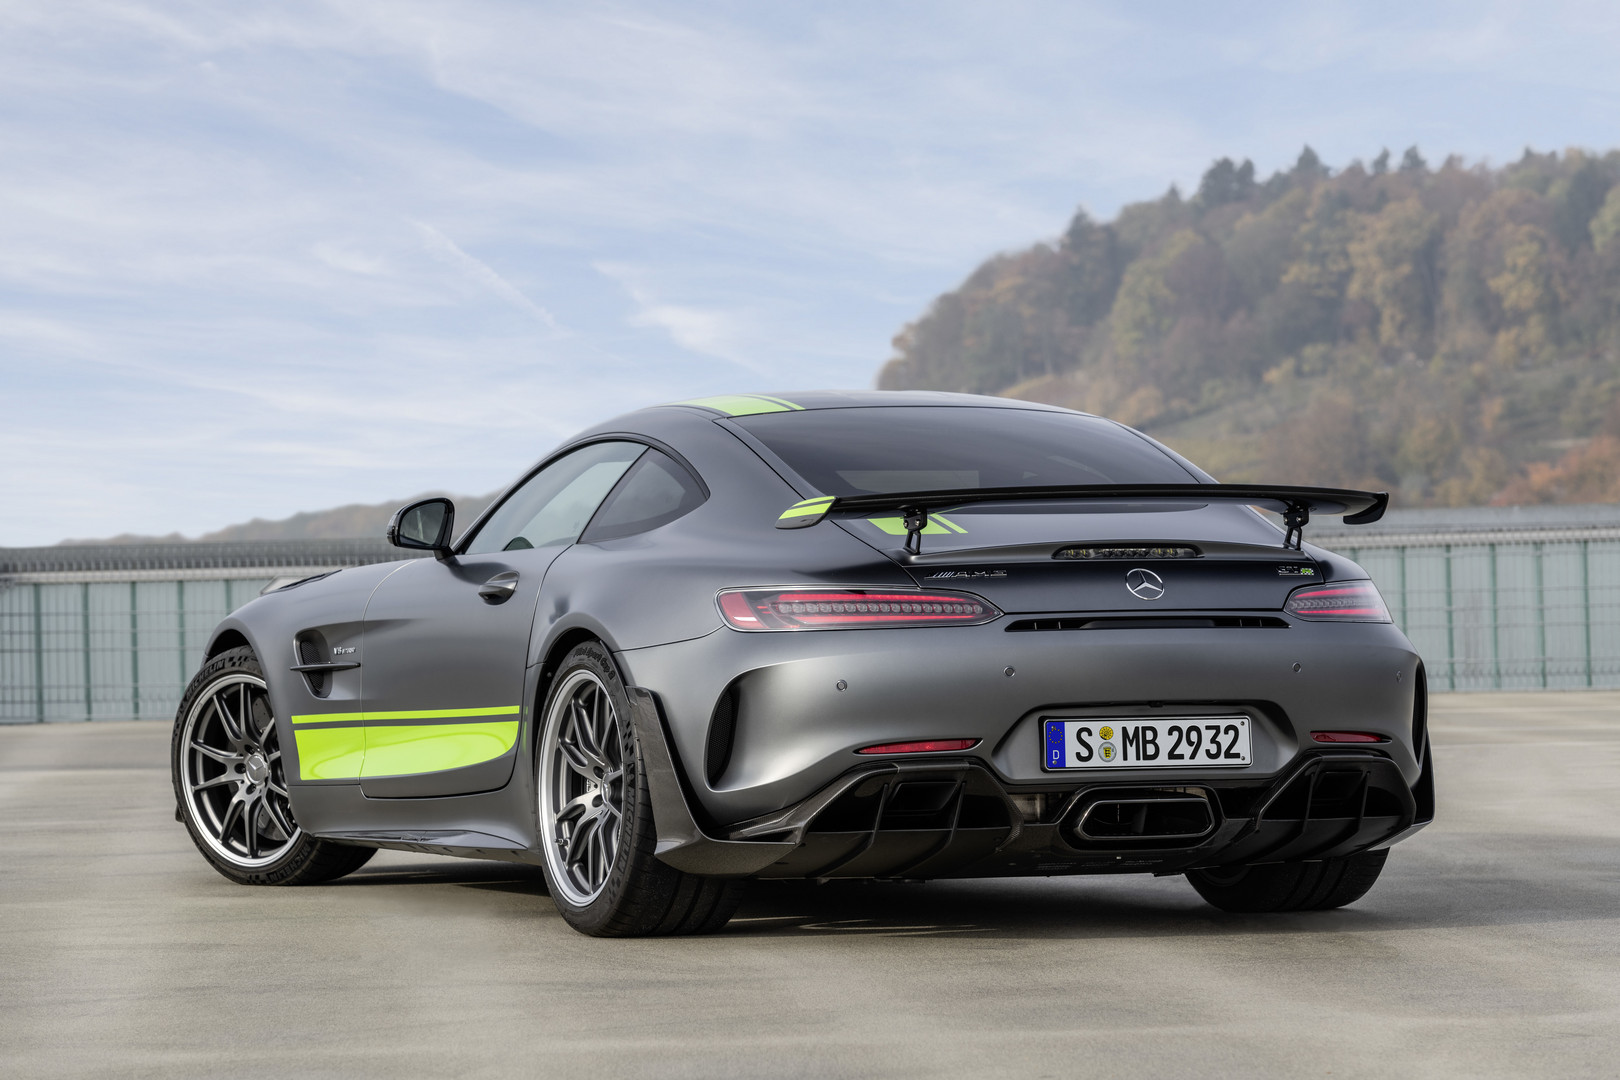 2019 Mercedes-AMG GT R PRO Officially Revealed - GTspirit